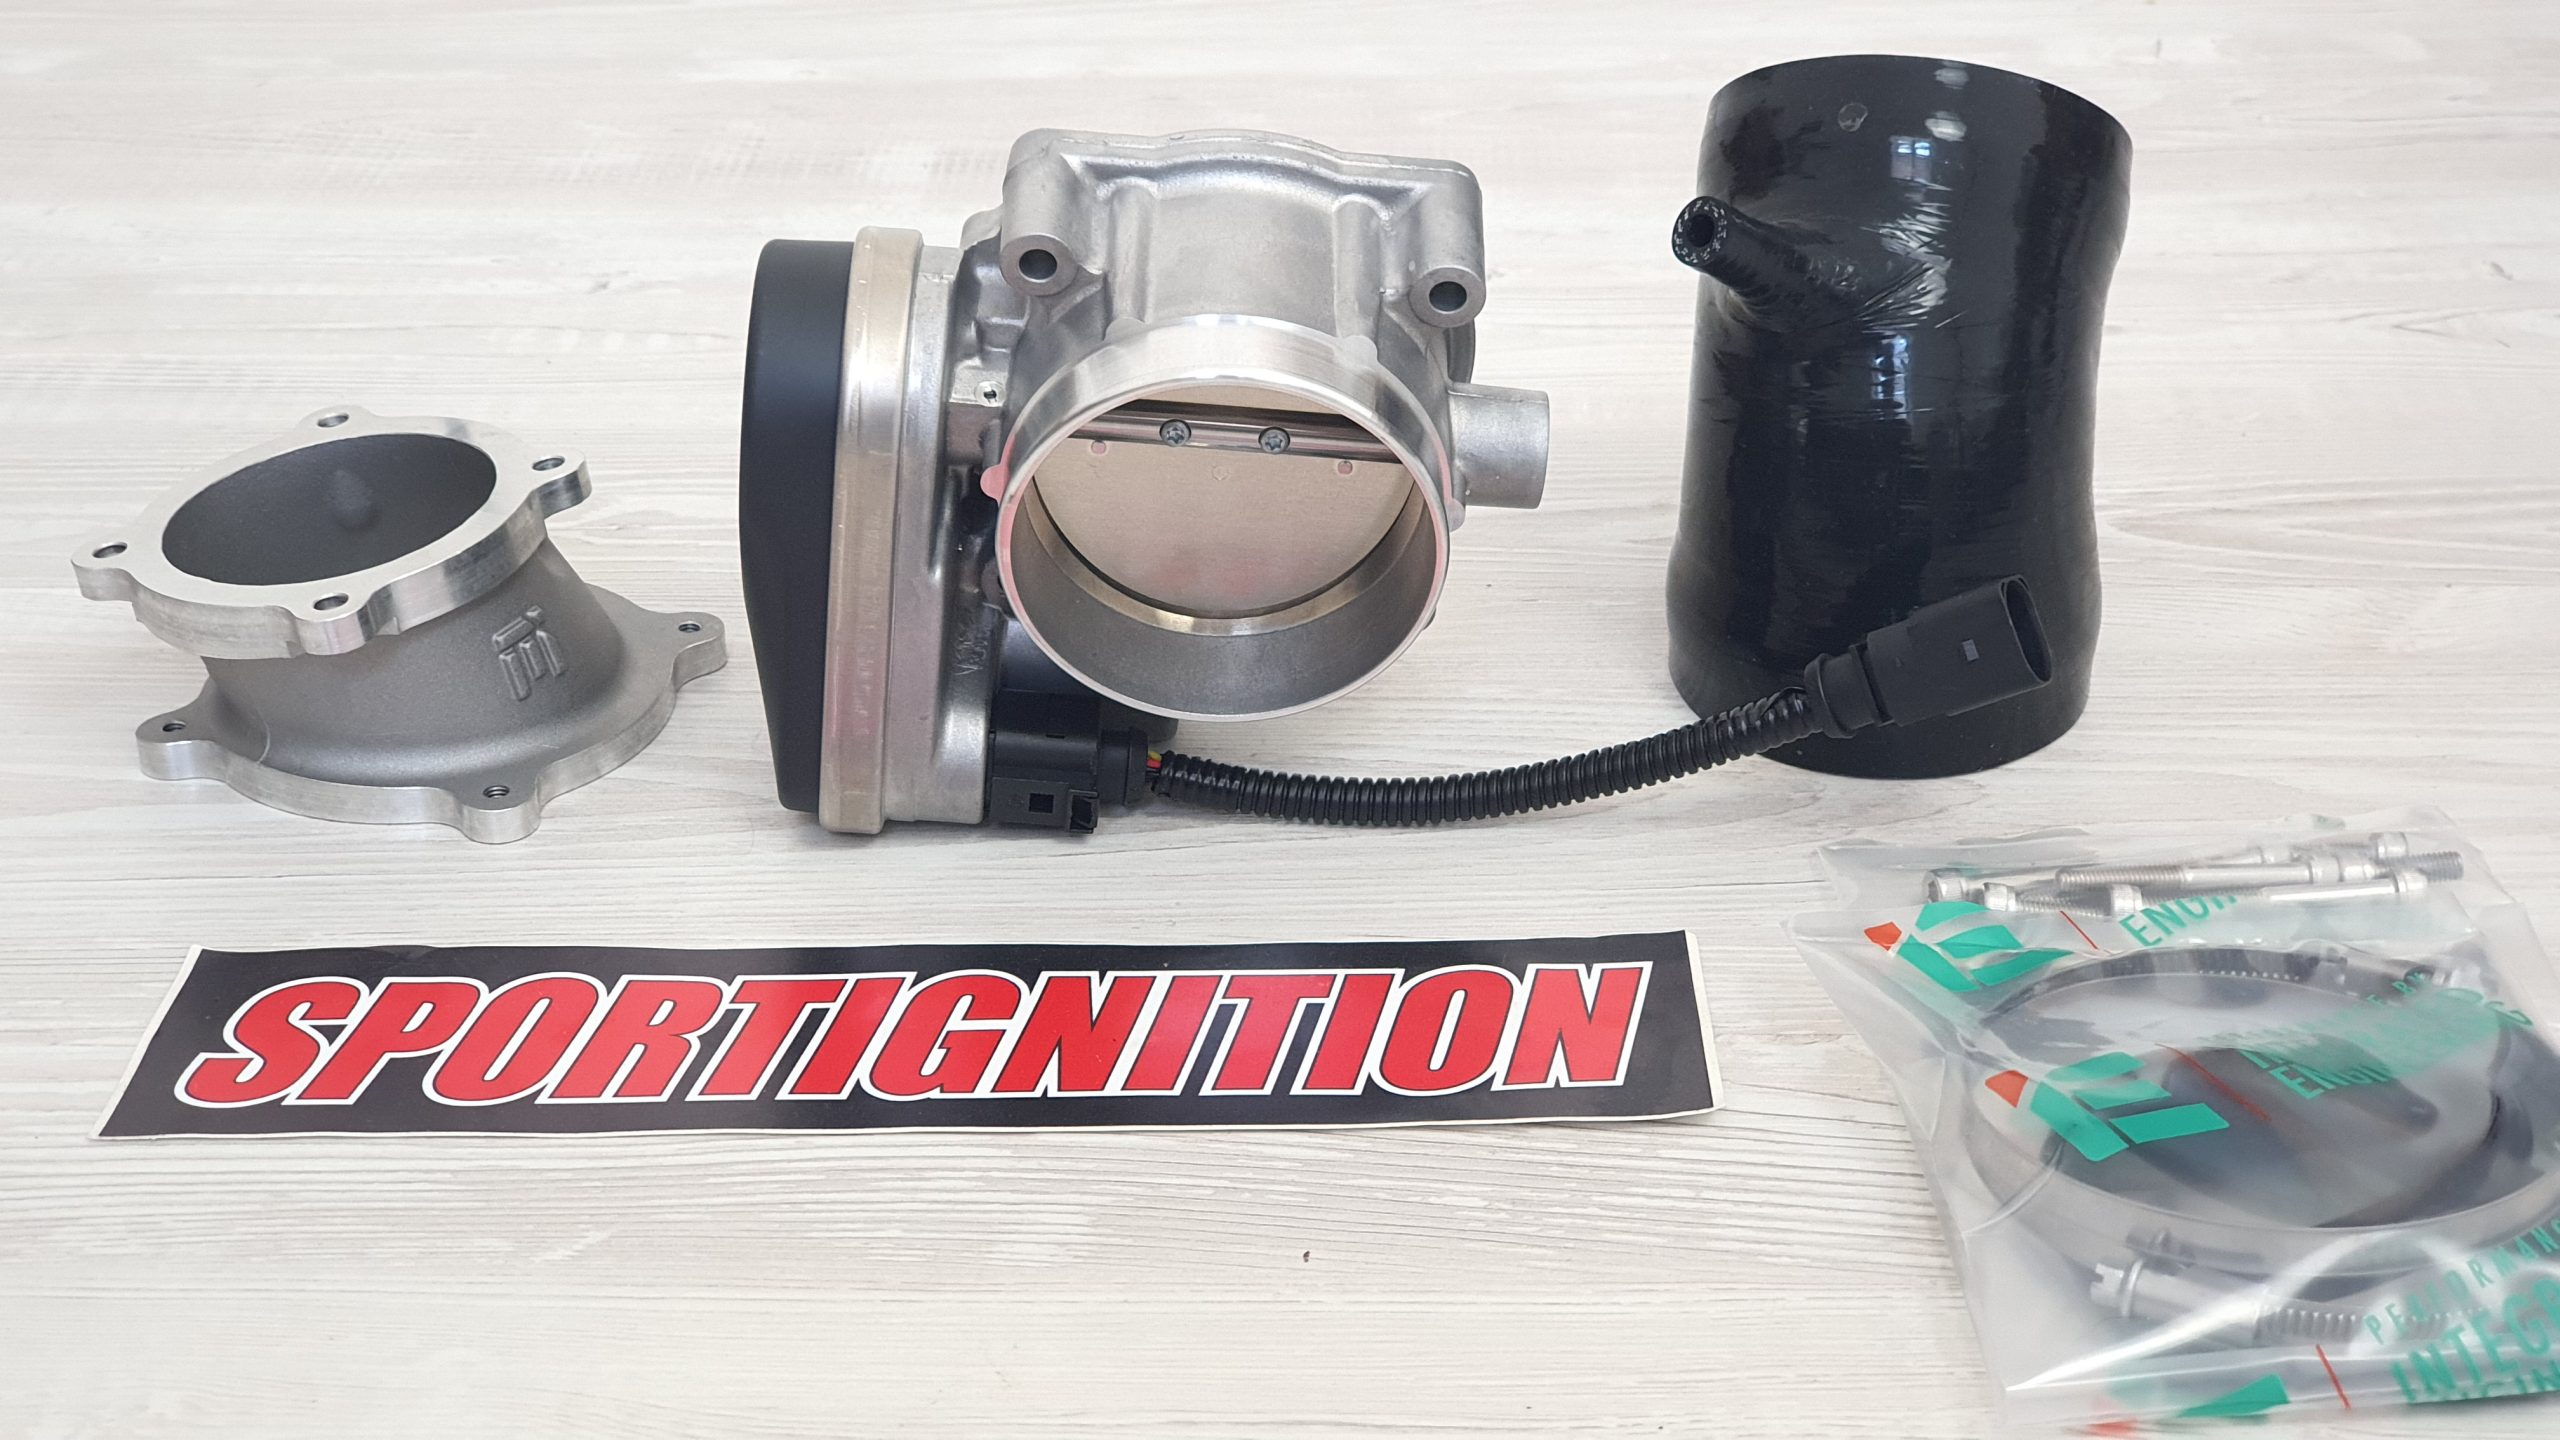 IEINCG3A BODY THROTTLE S4 3.0T V6 SPORTIGNITION